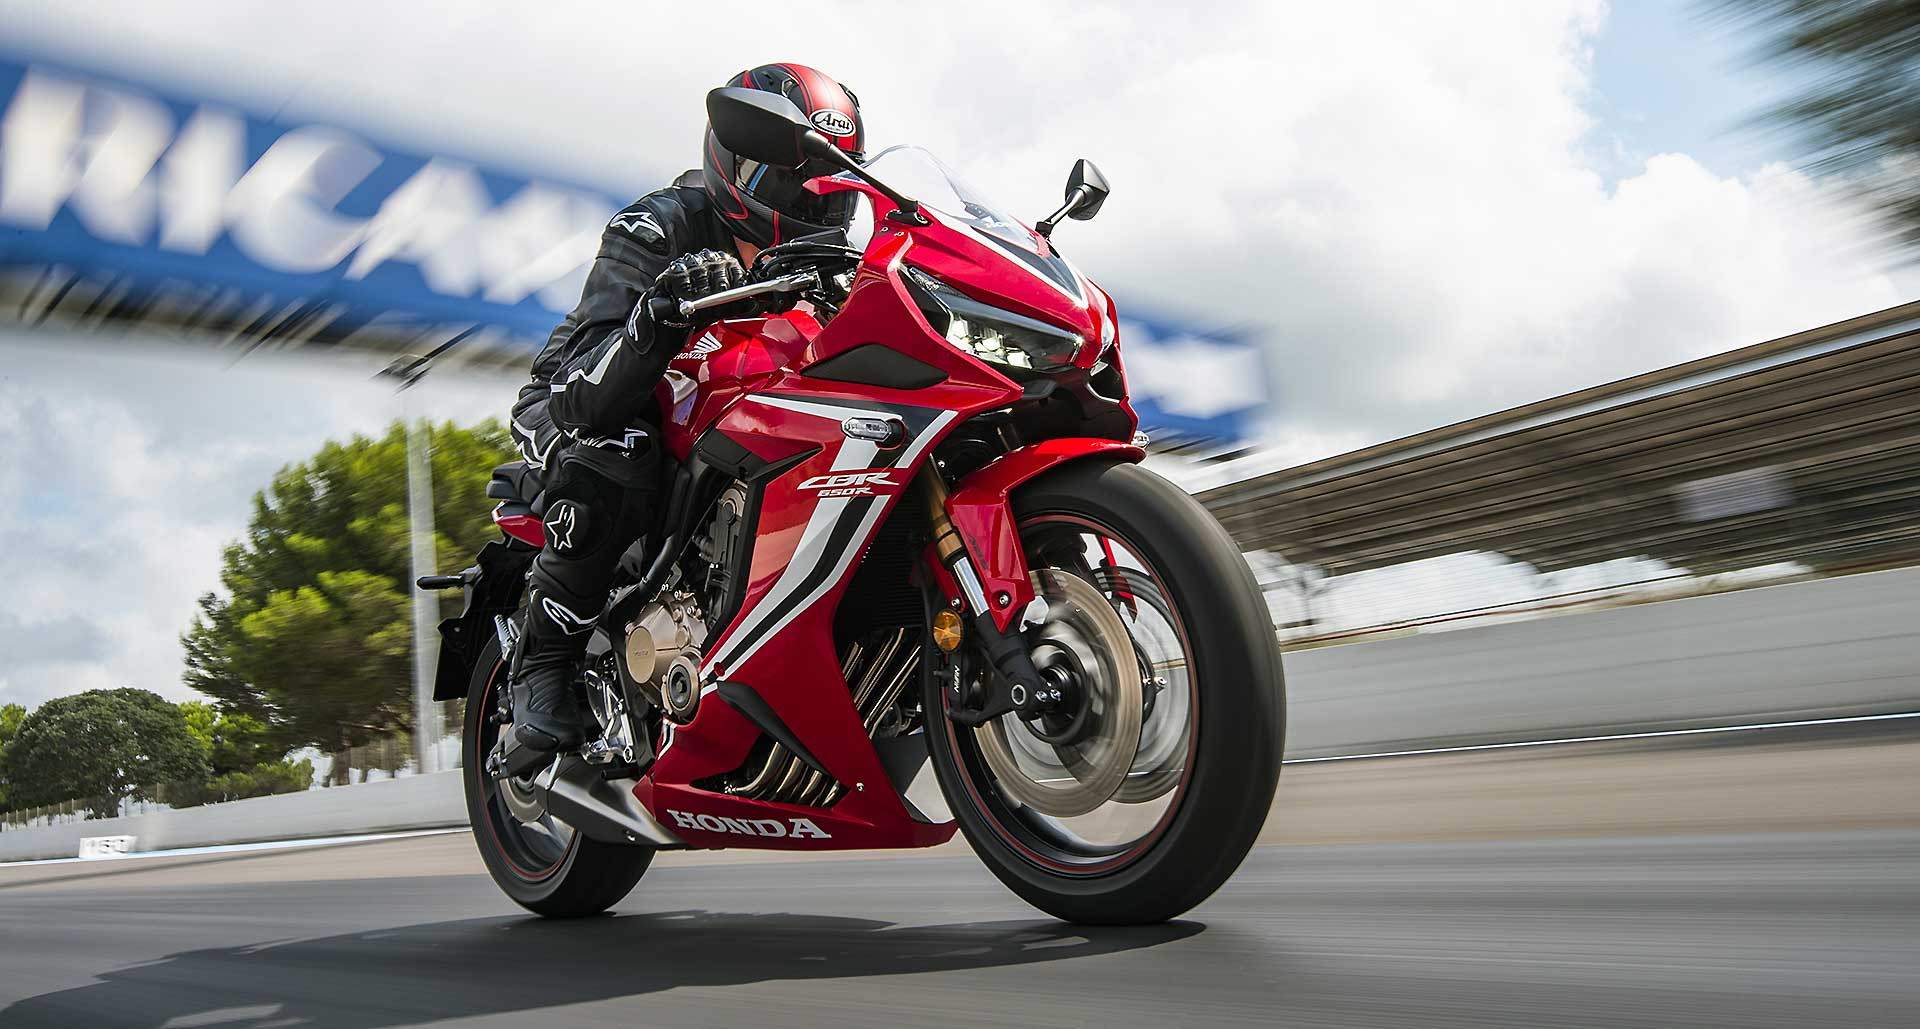 Honda broke the cover of five new bikes for 2019